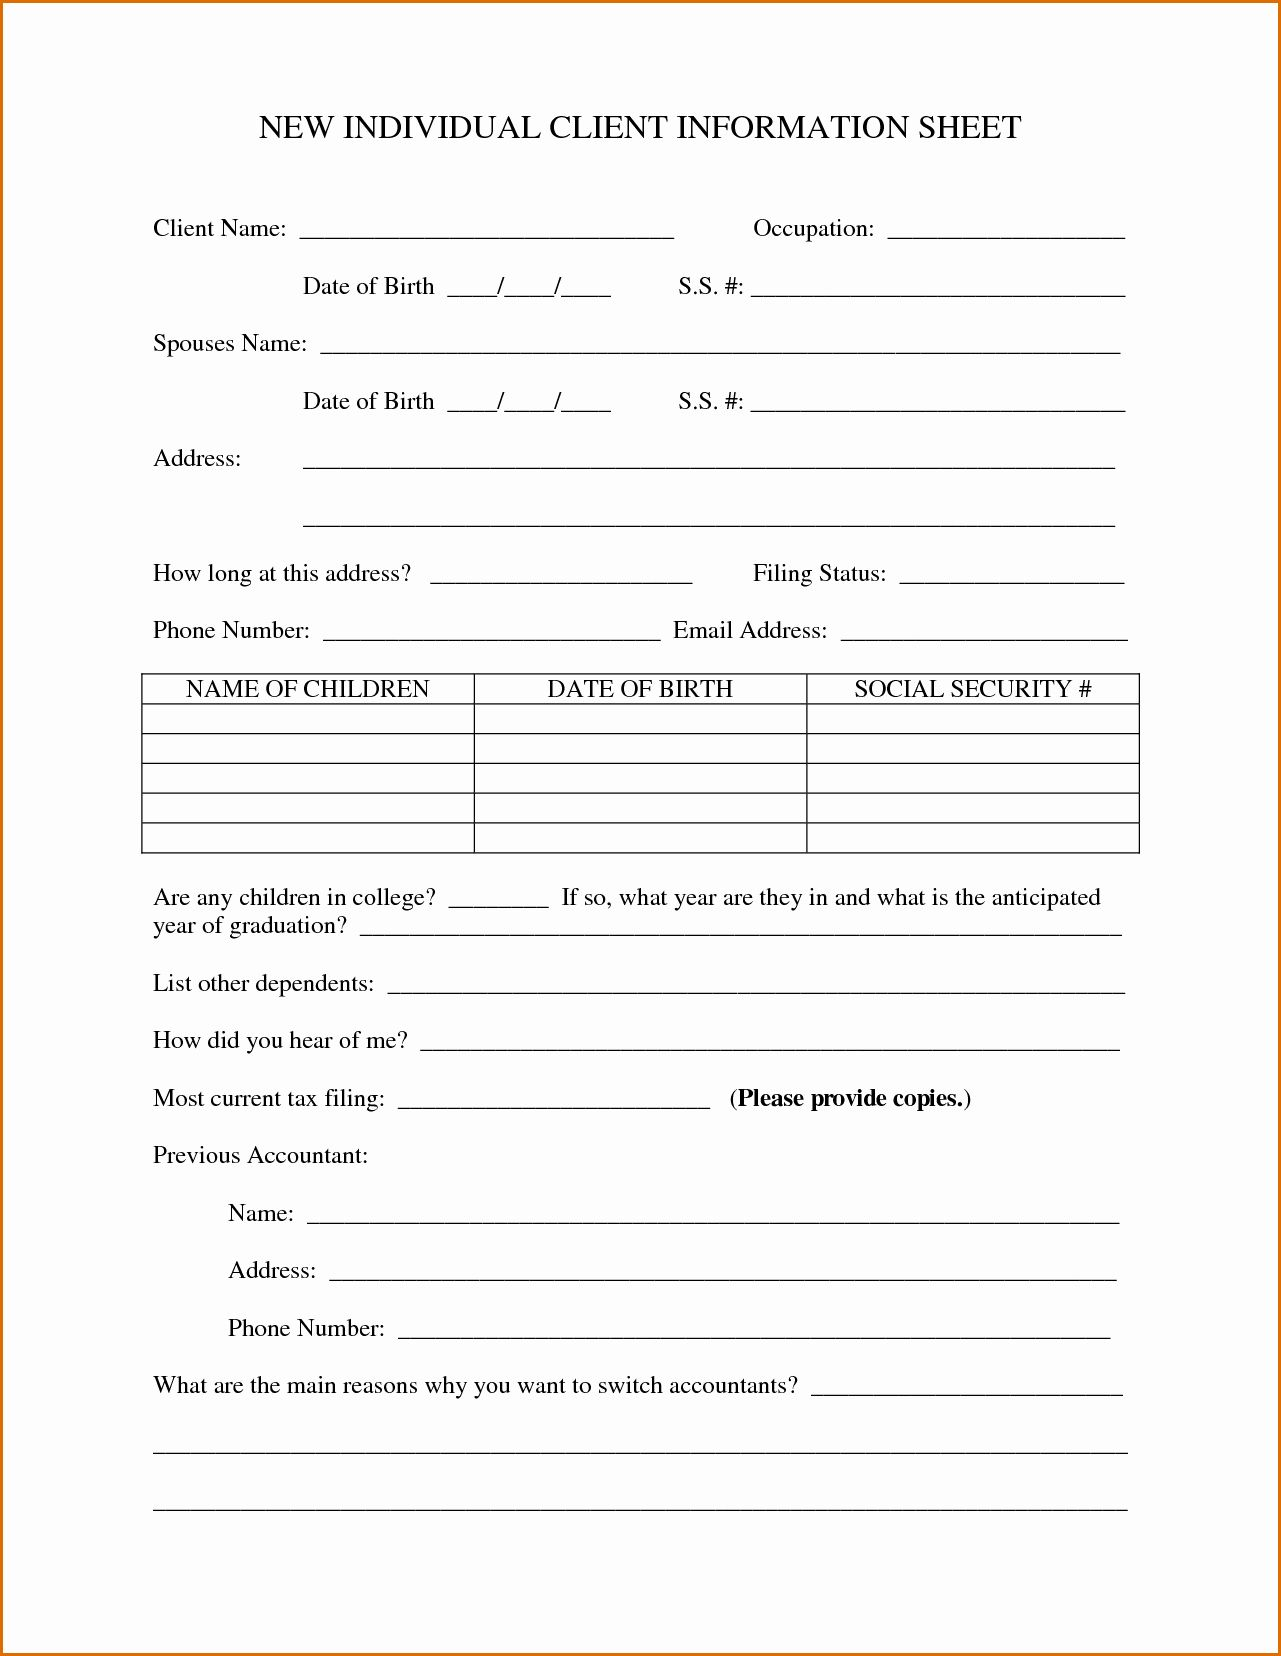 Customer Information Form Template Lovely 10 Client